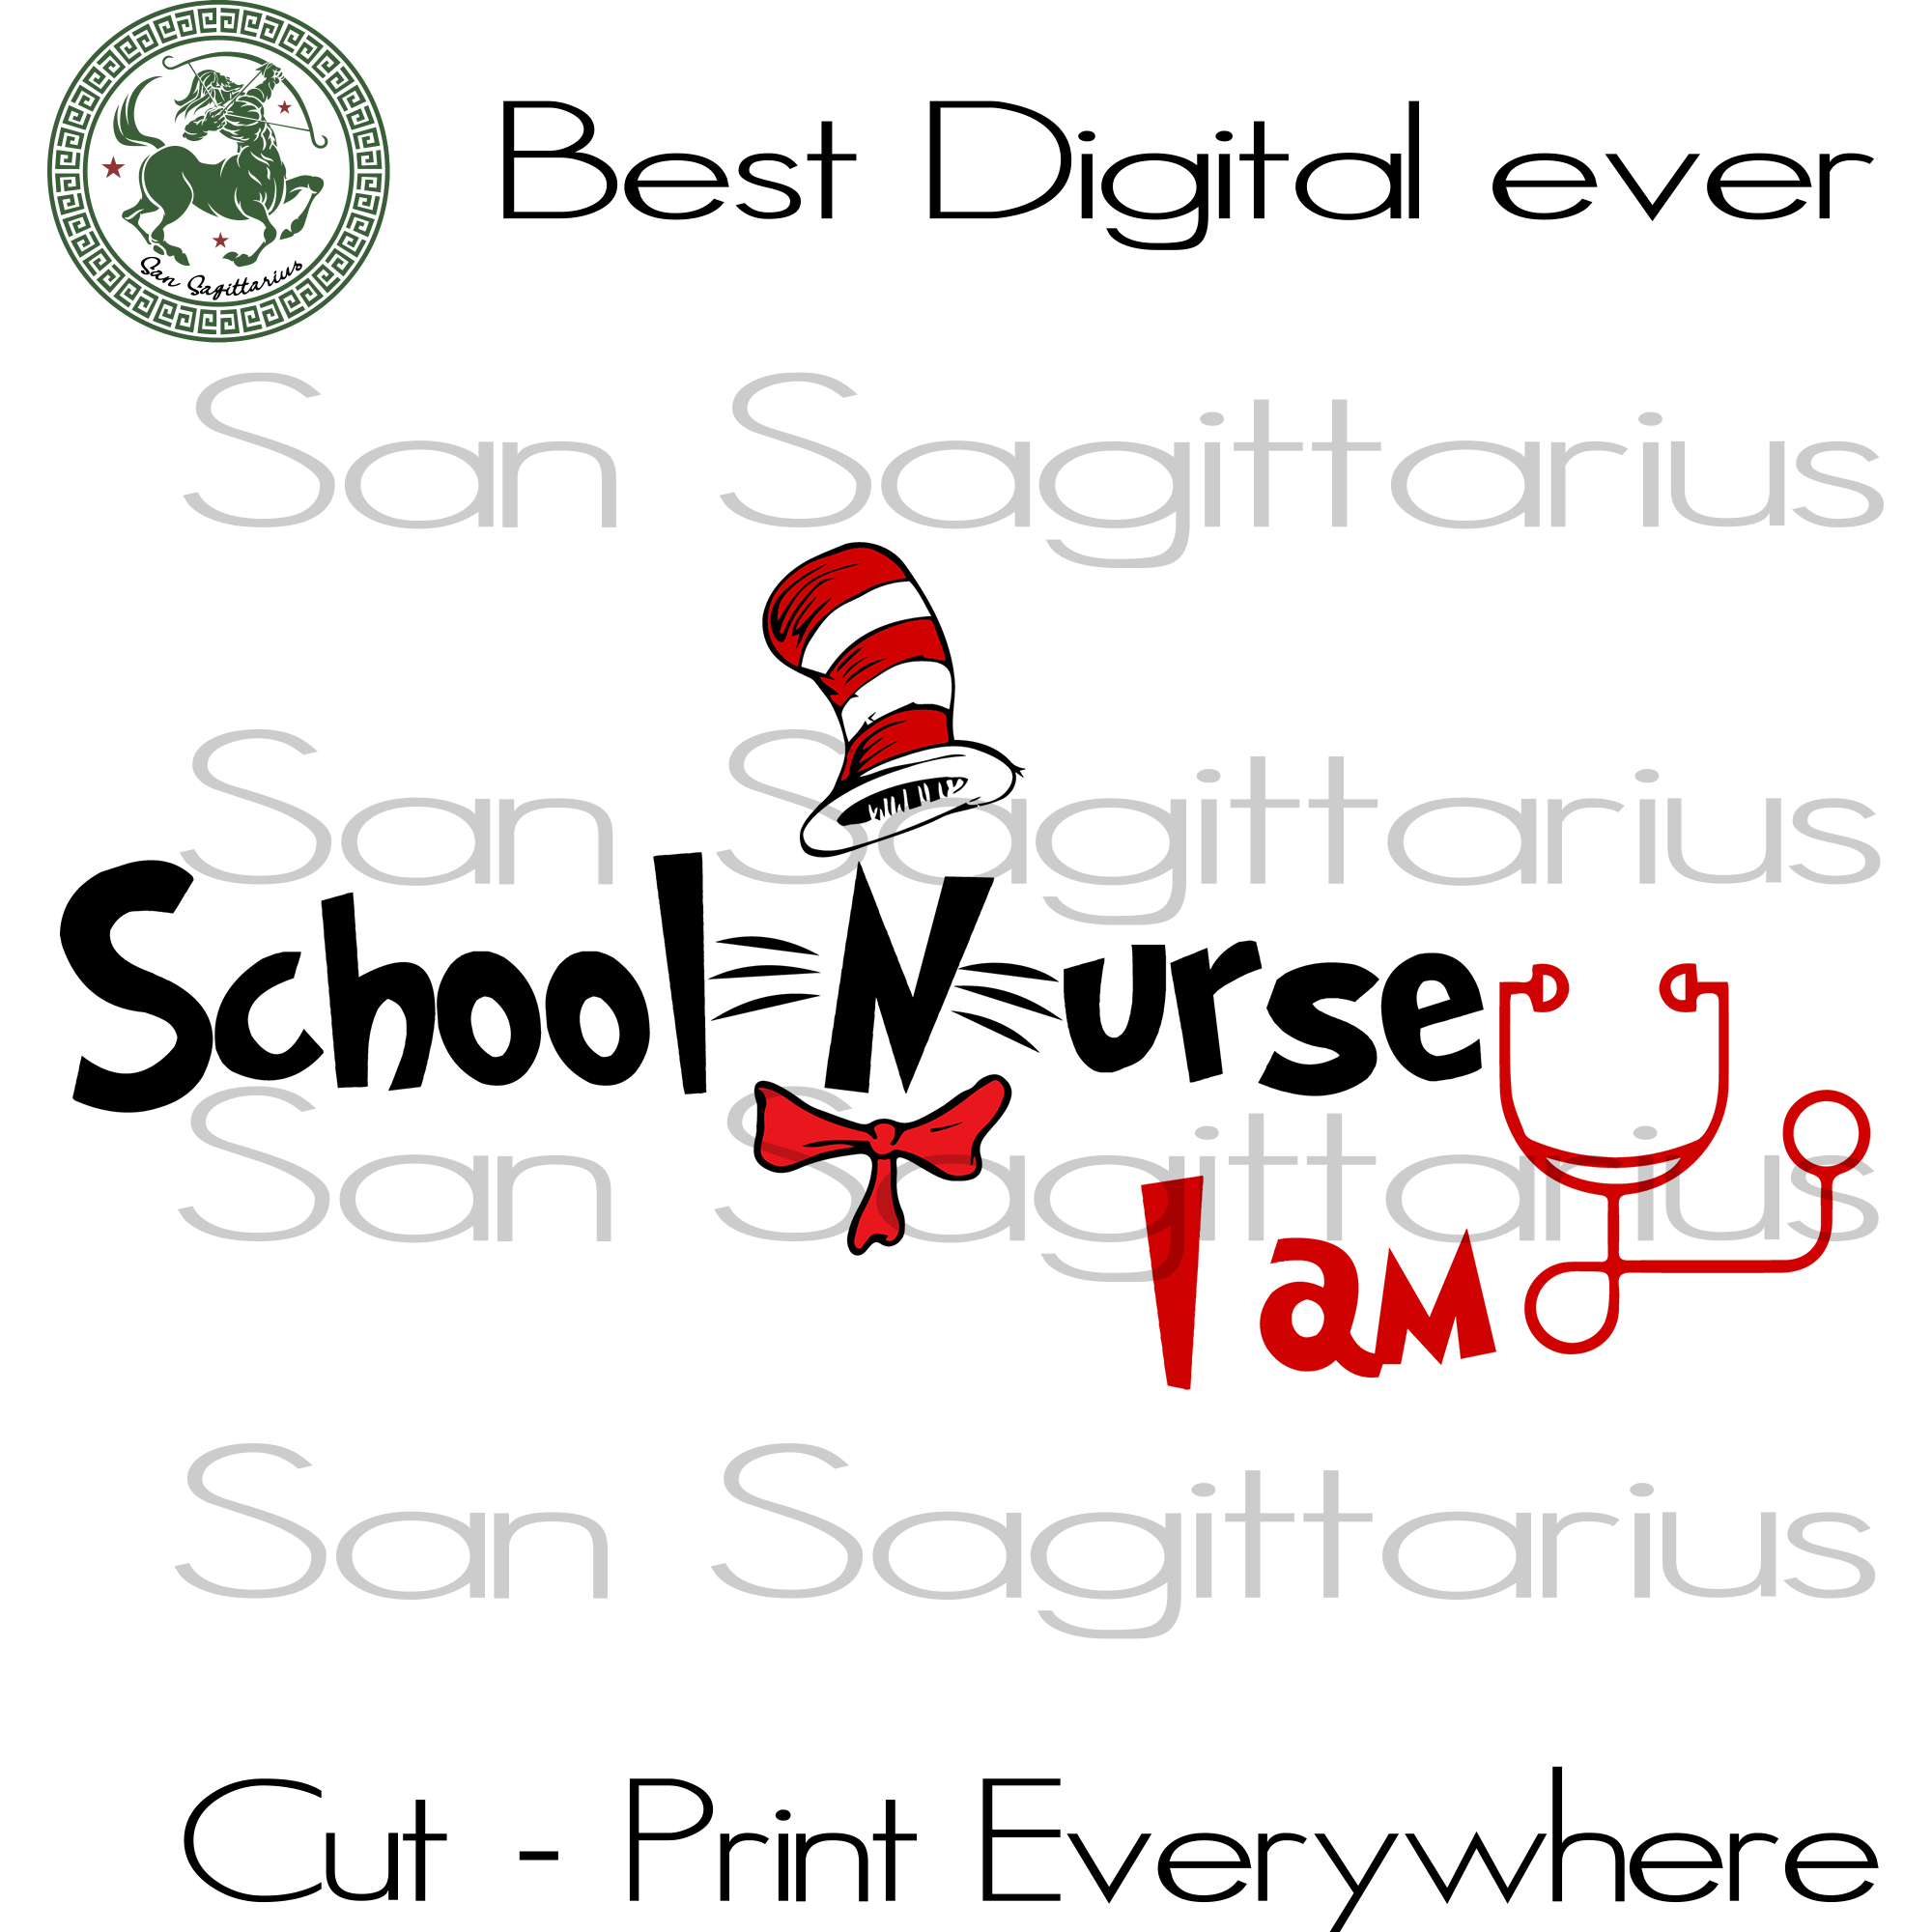 Dr Seuss schooI nurse  SVG Files For Silhouette, Cricut Files, SVG DXF EPS PNG Instant Download